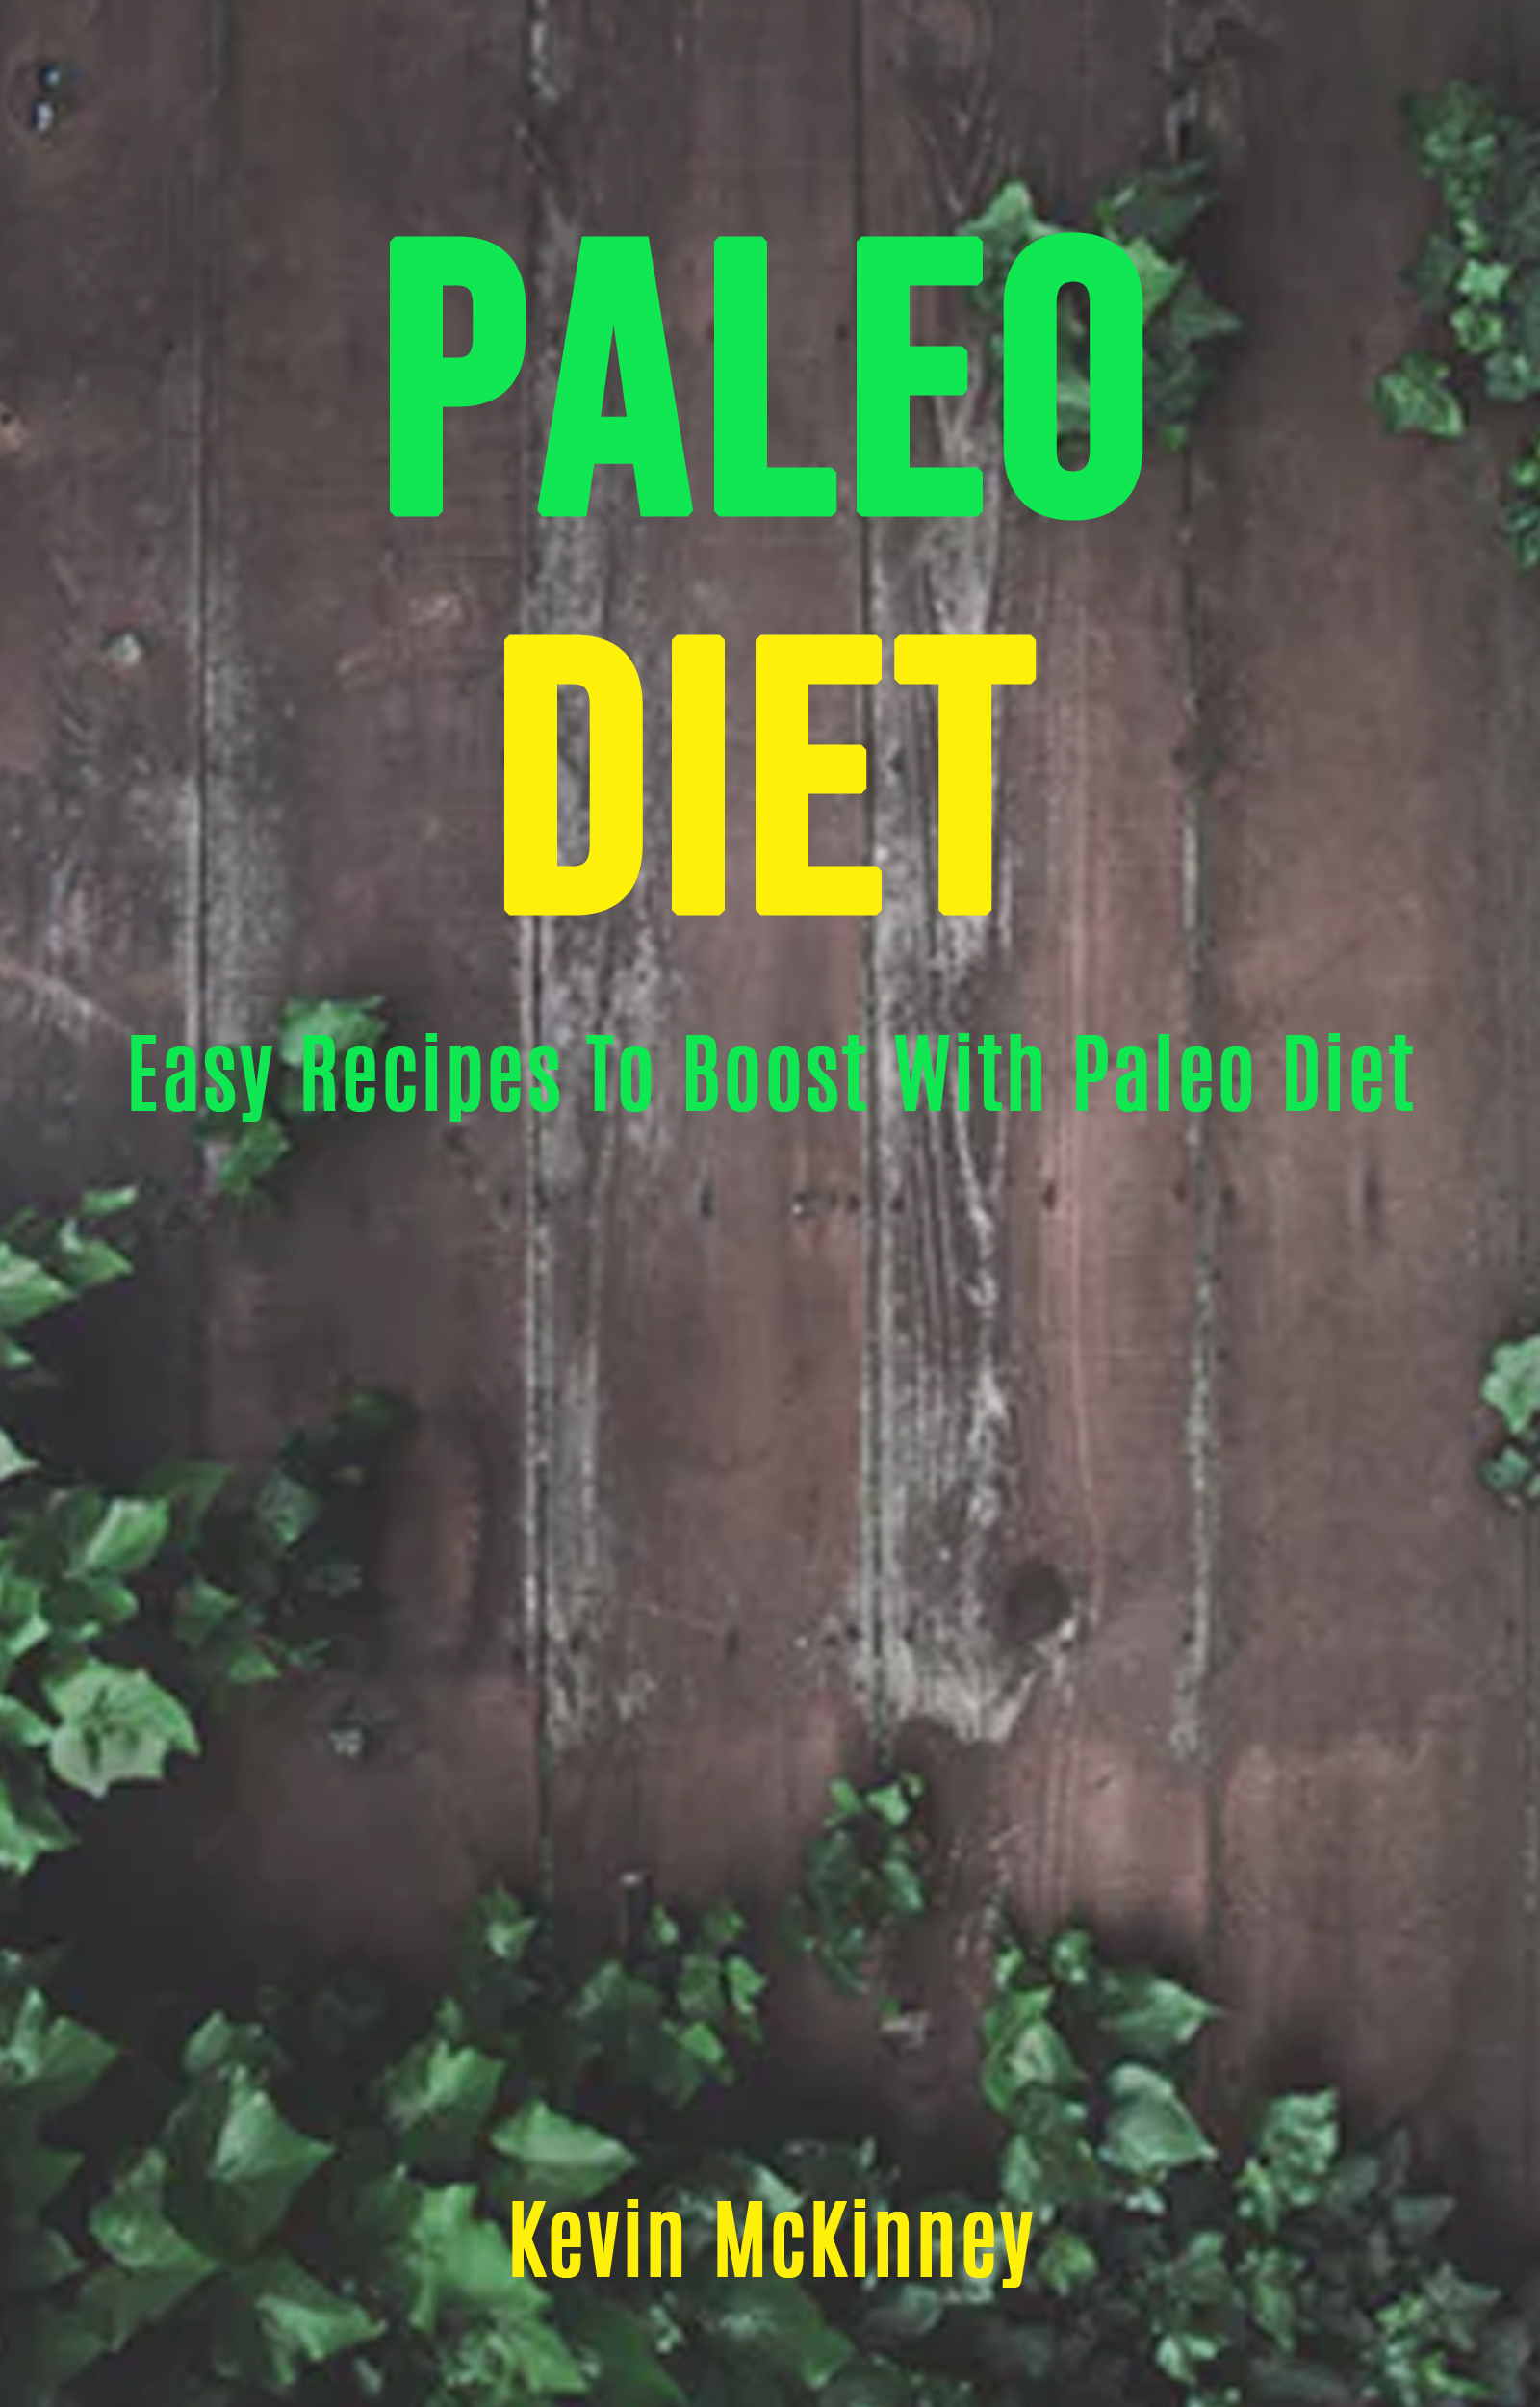 Paleo diet: easy recipes to boost with paleo diet